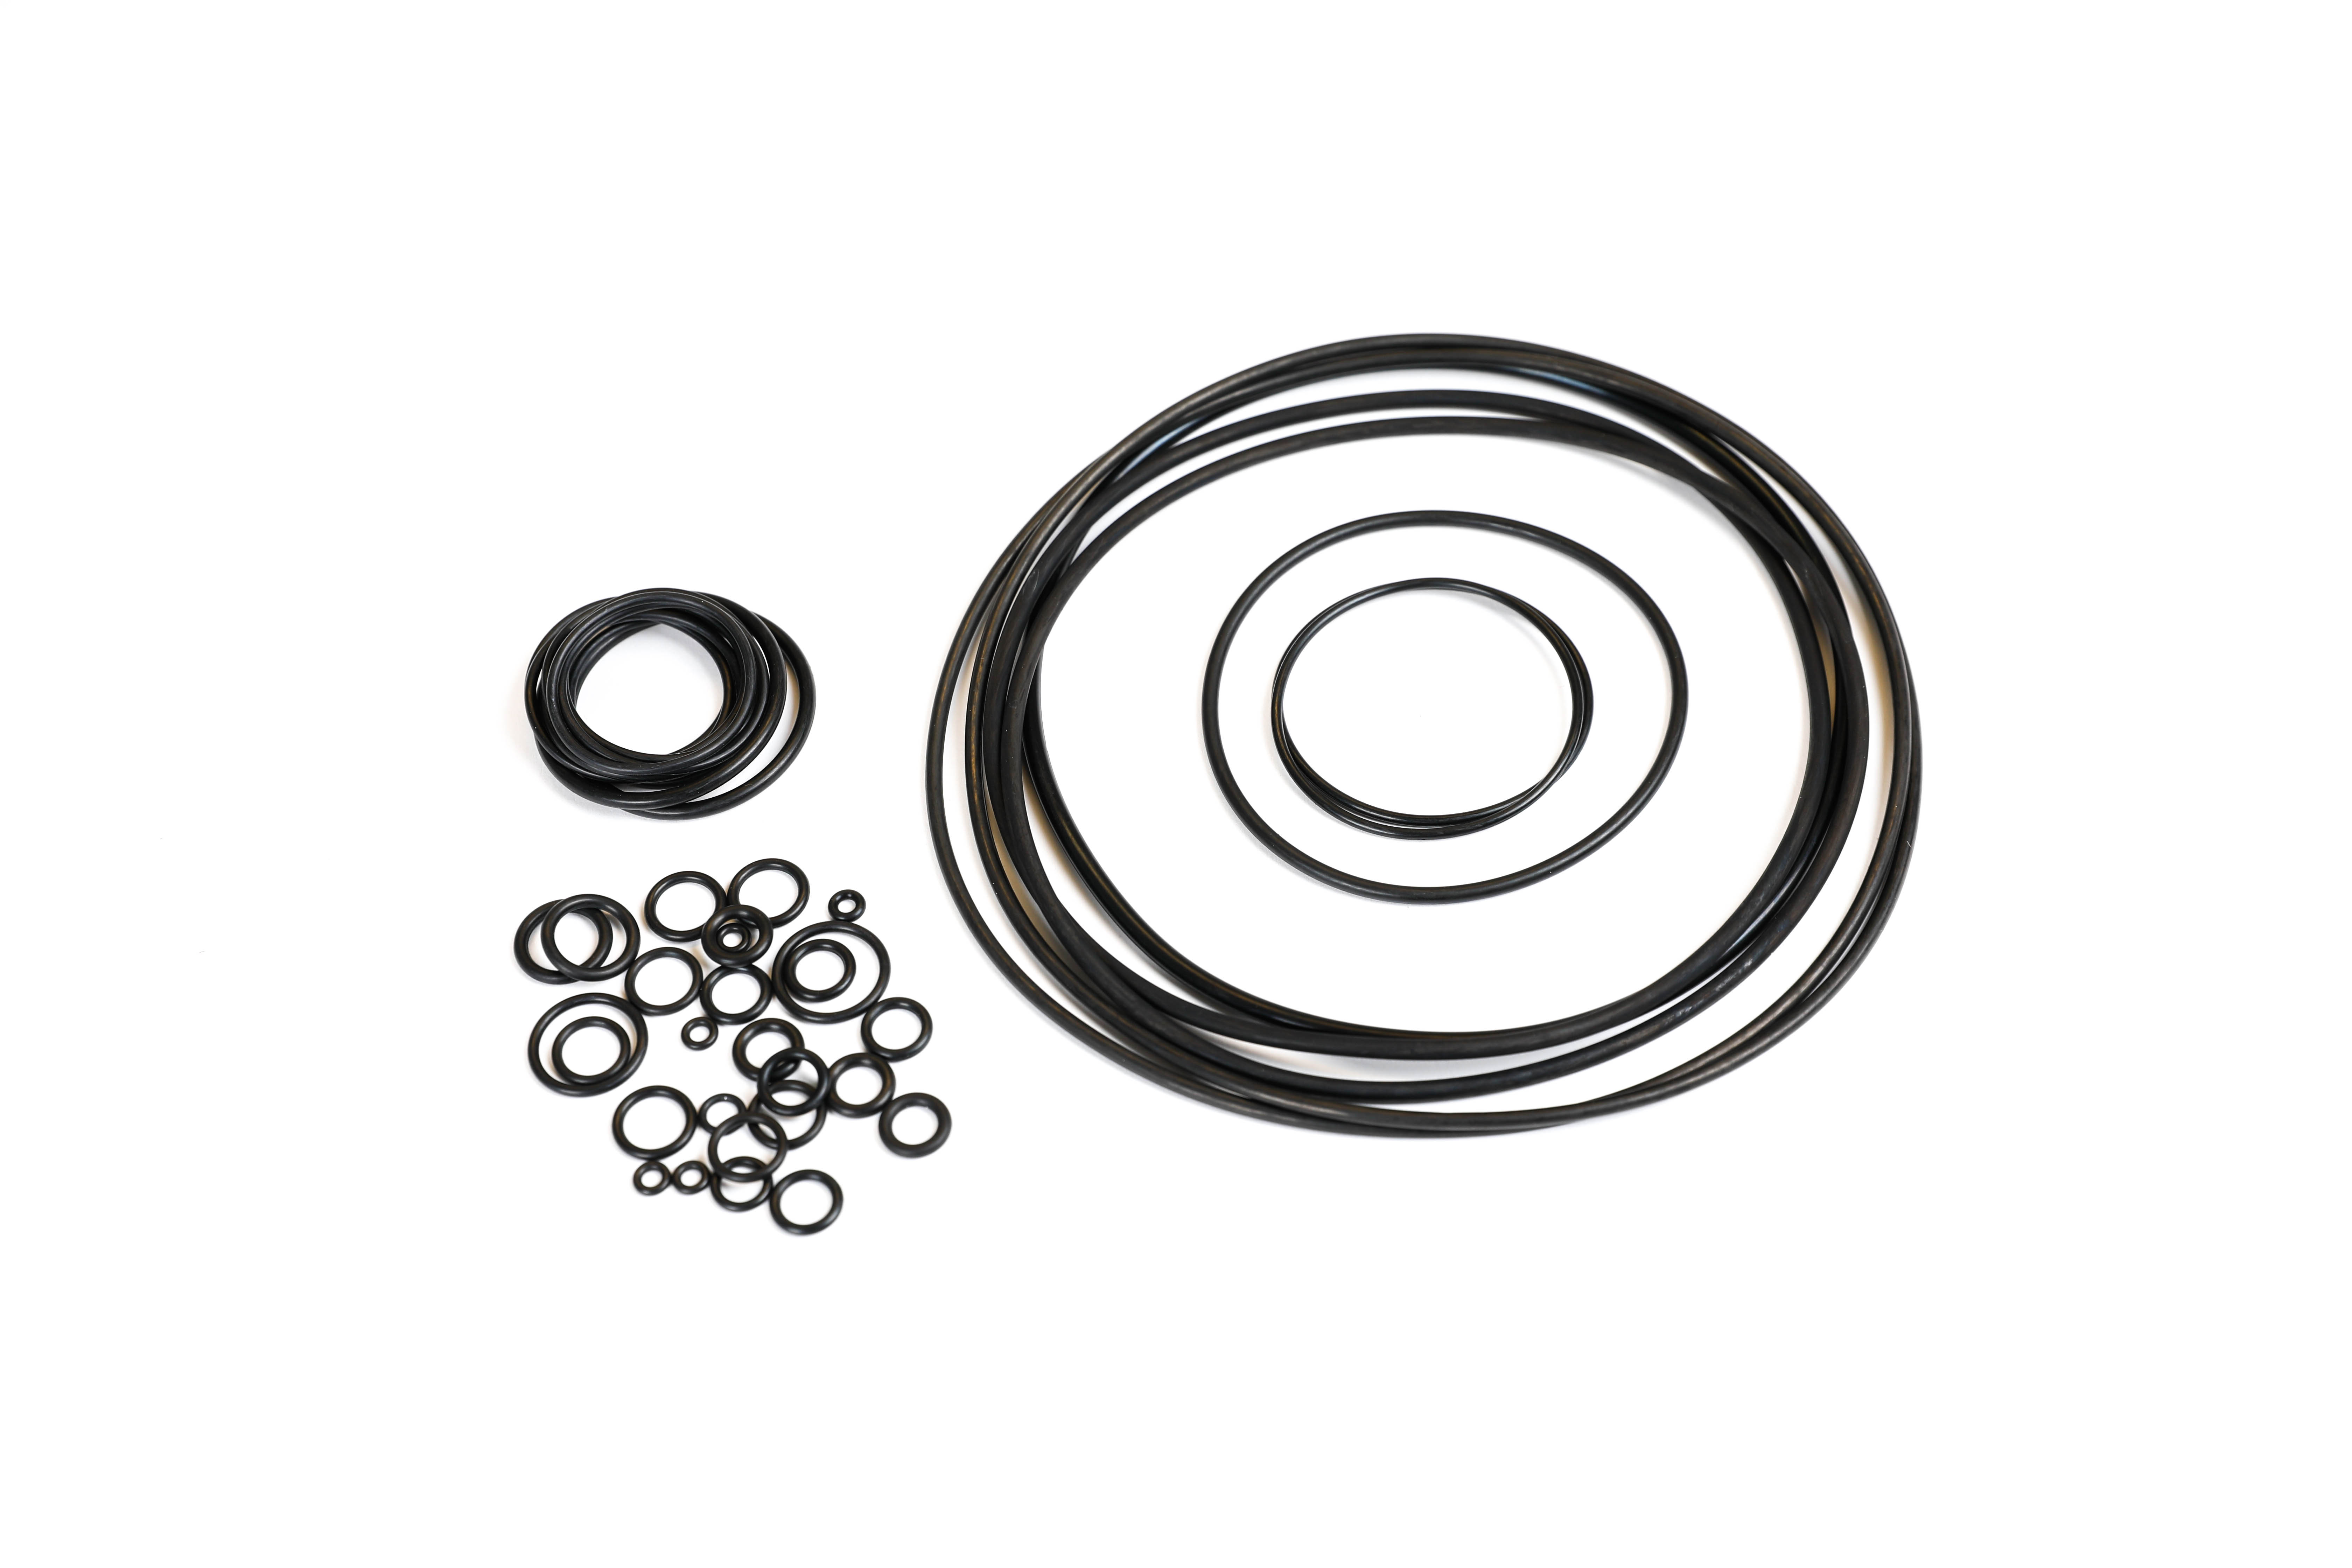 JJ-CCR Rebreather O-ring kit